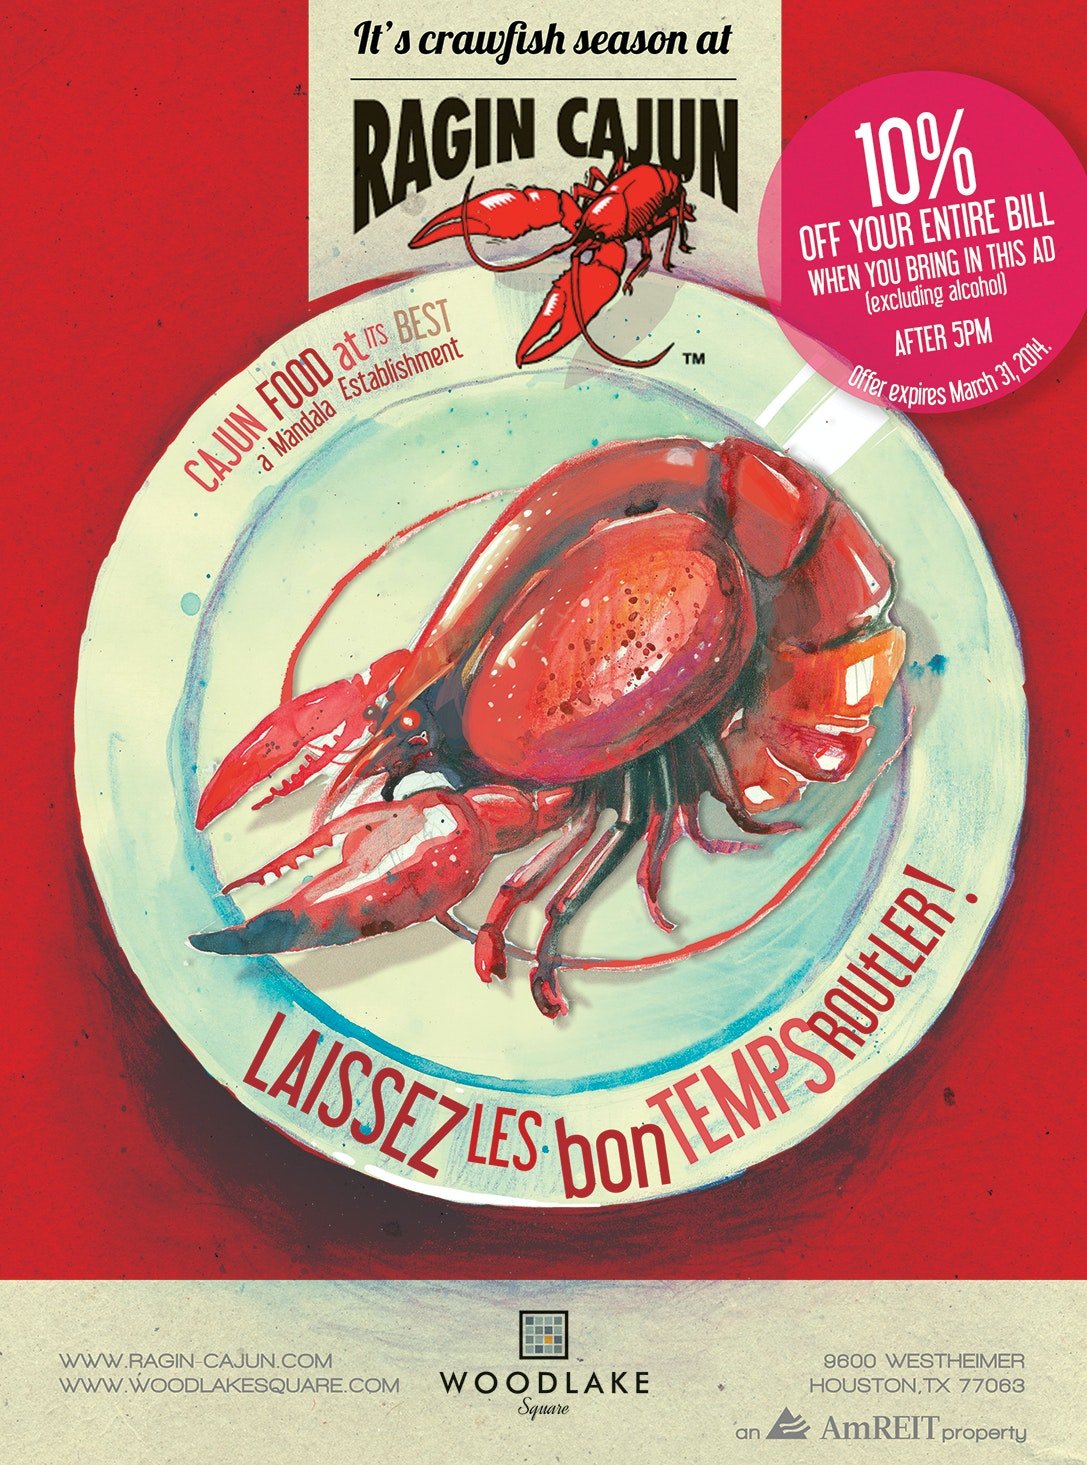 Flyer for Cajun restaurant